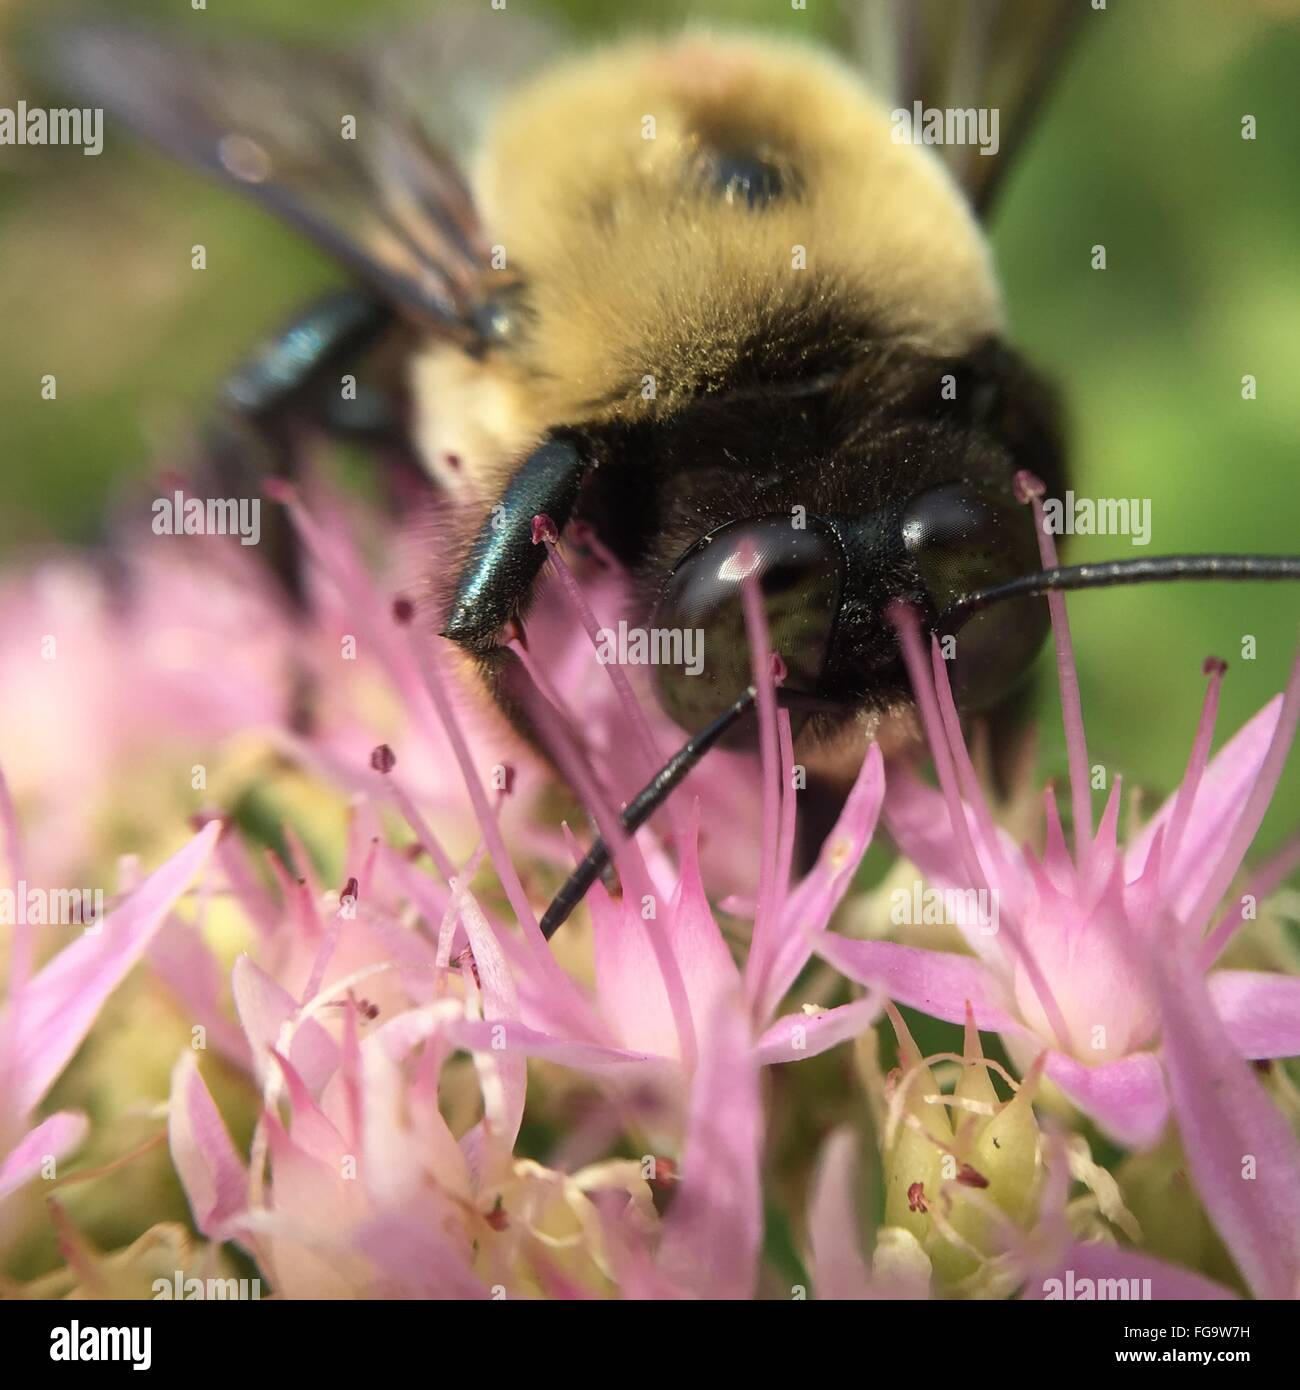 Close-Up Of Bee Pollinating On Flower - Stock Image